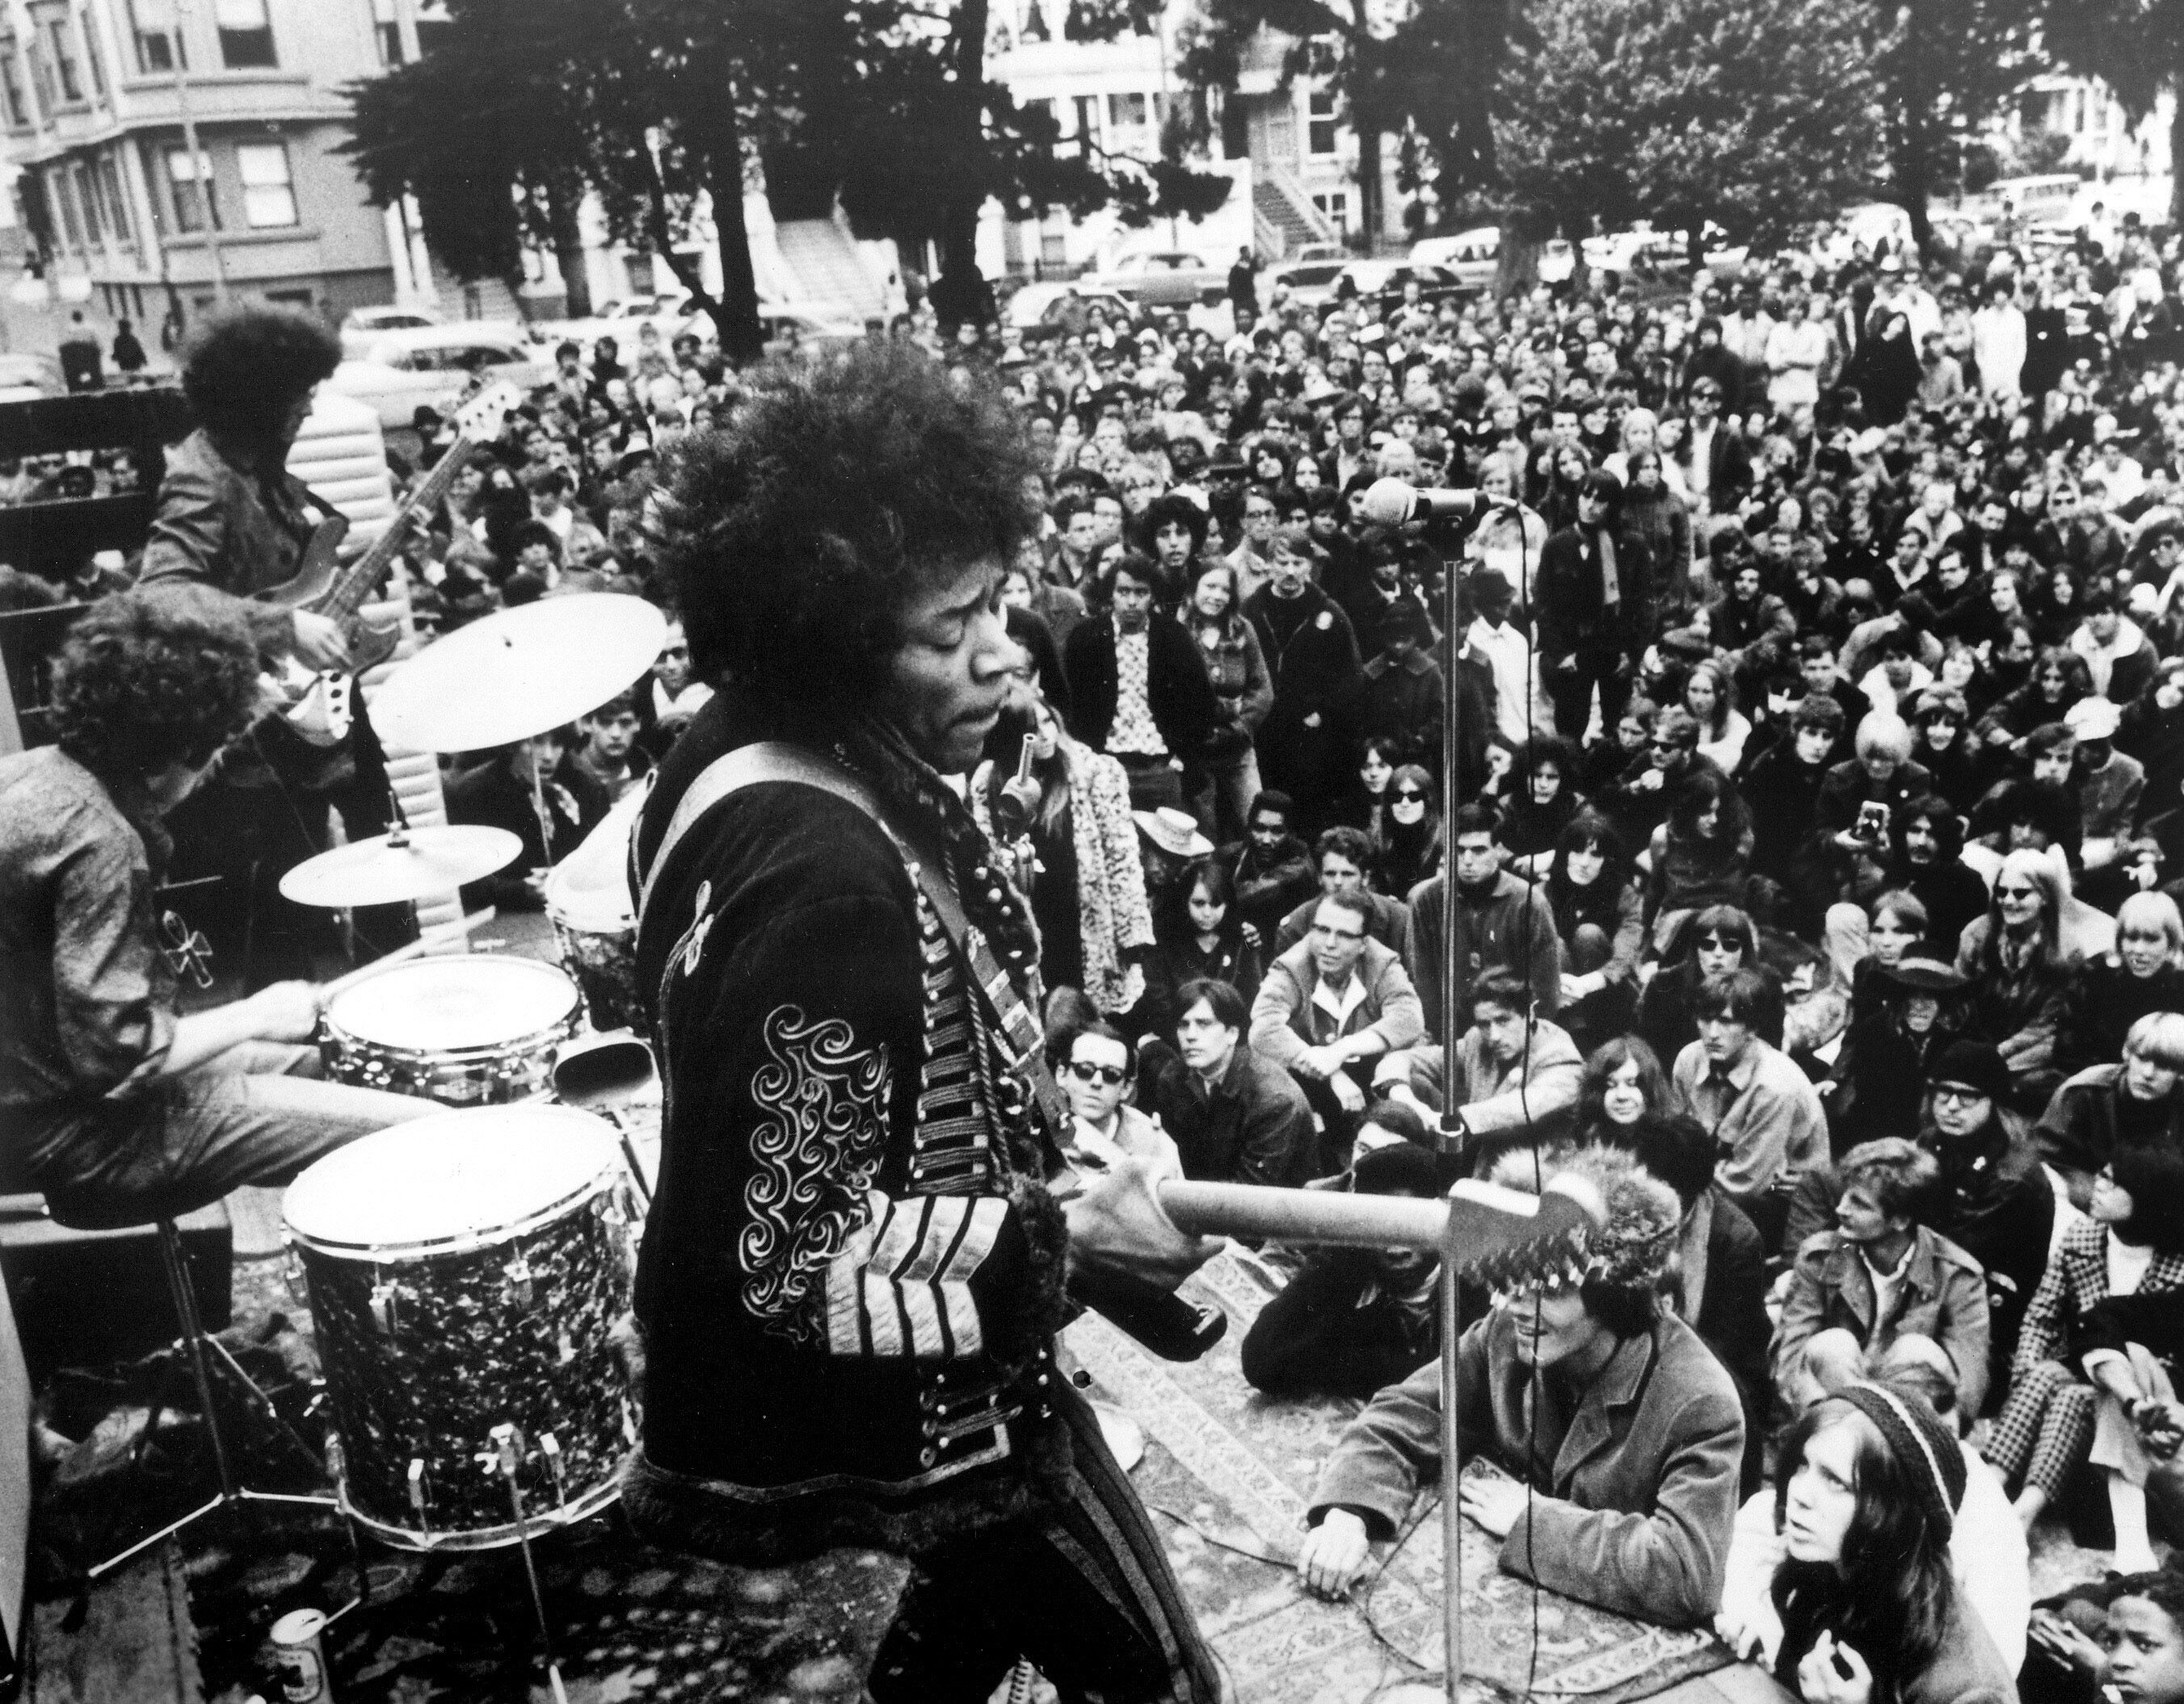 The Jimi Hendrix Experience (live at Golden Gate Park, June 25, 1967) - ©WENN.com